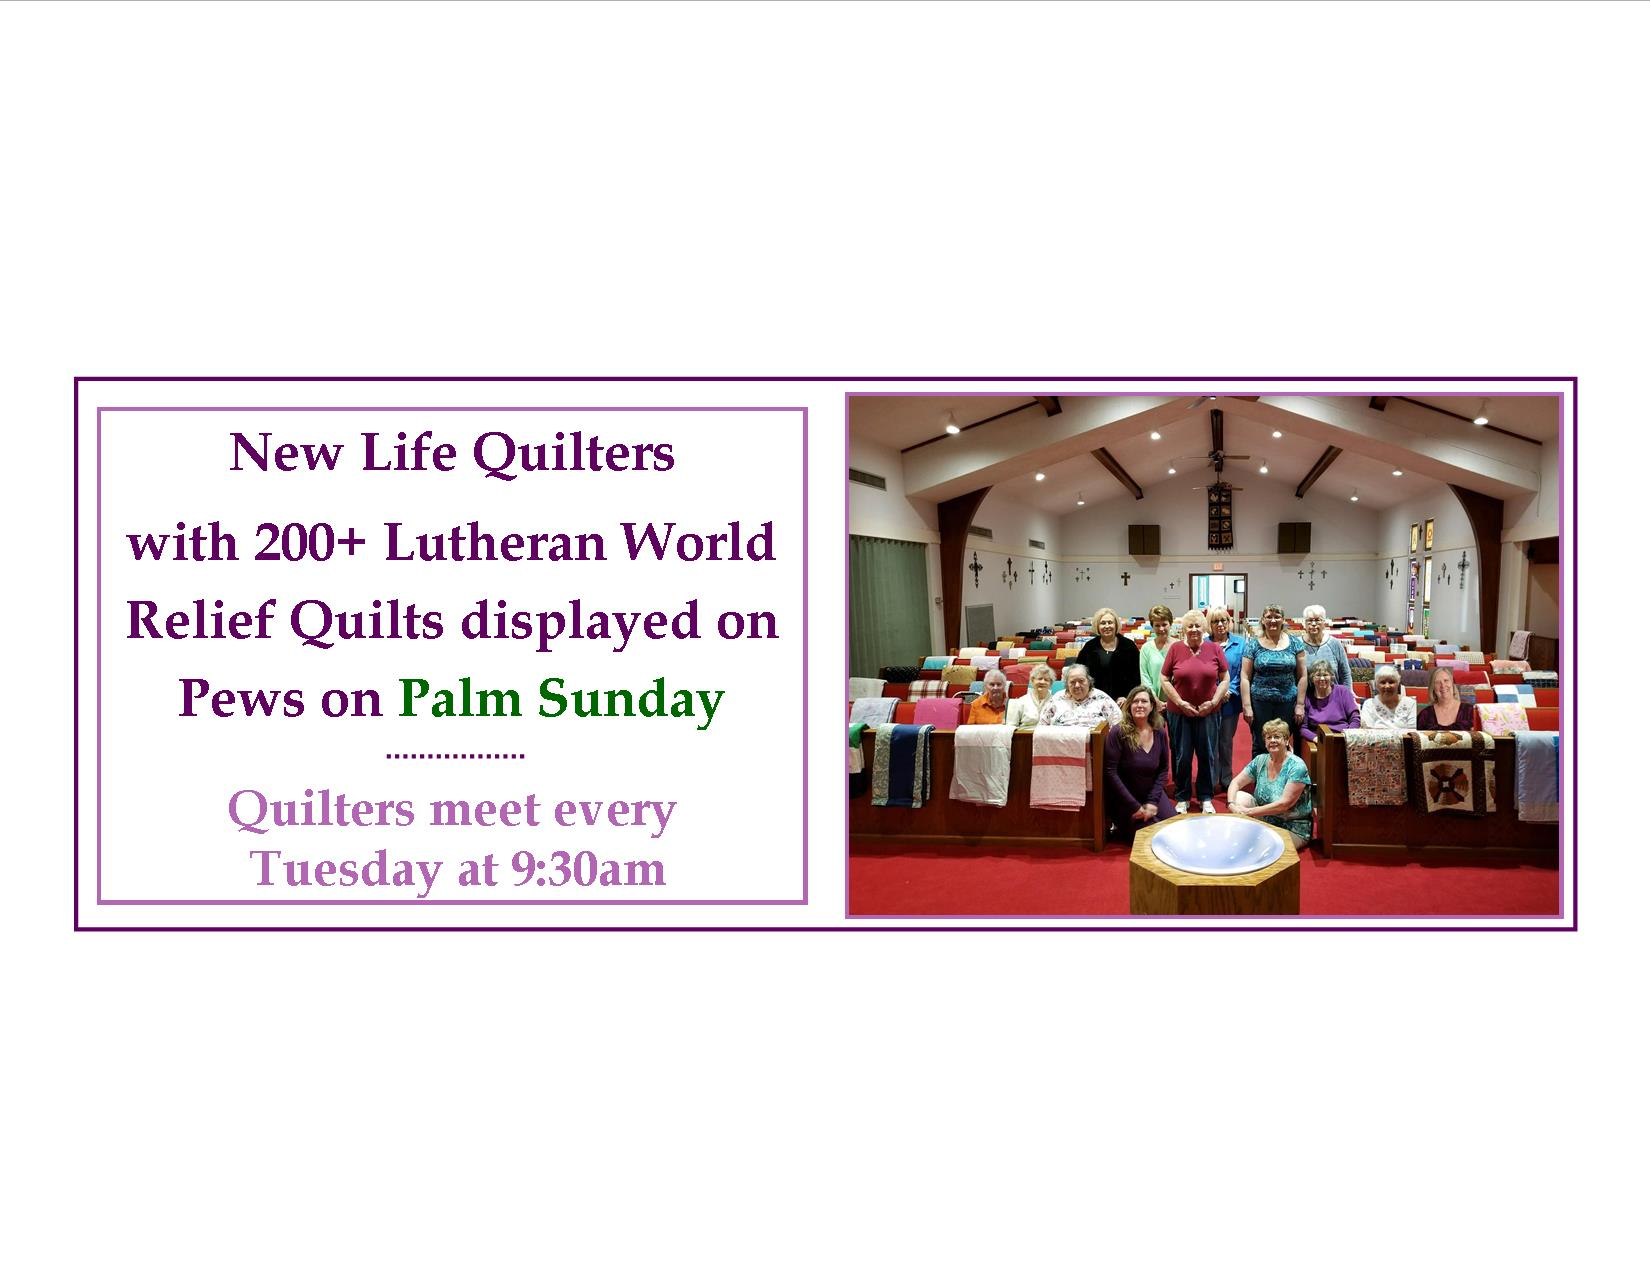 Quilters with quilts